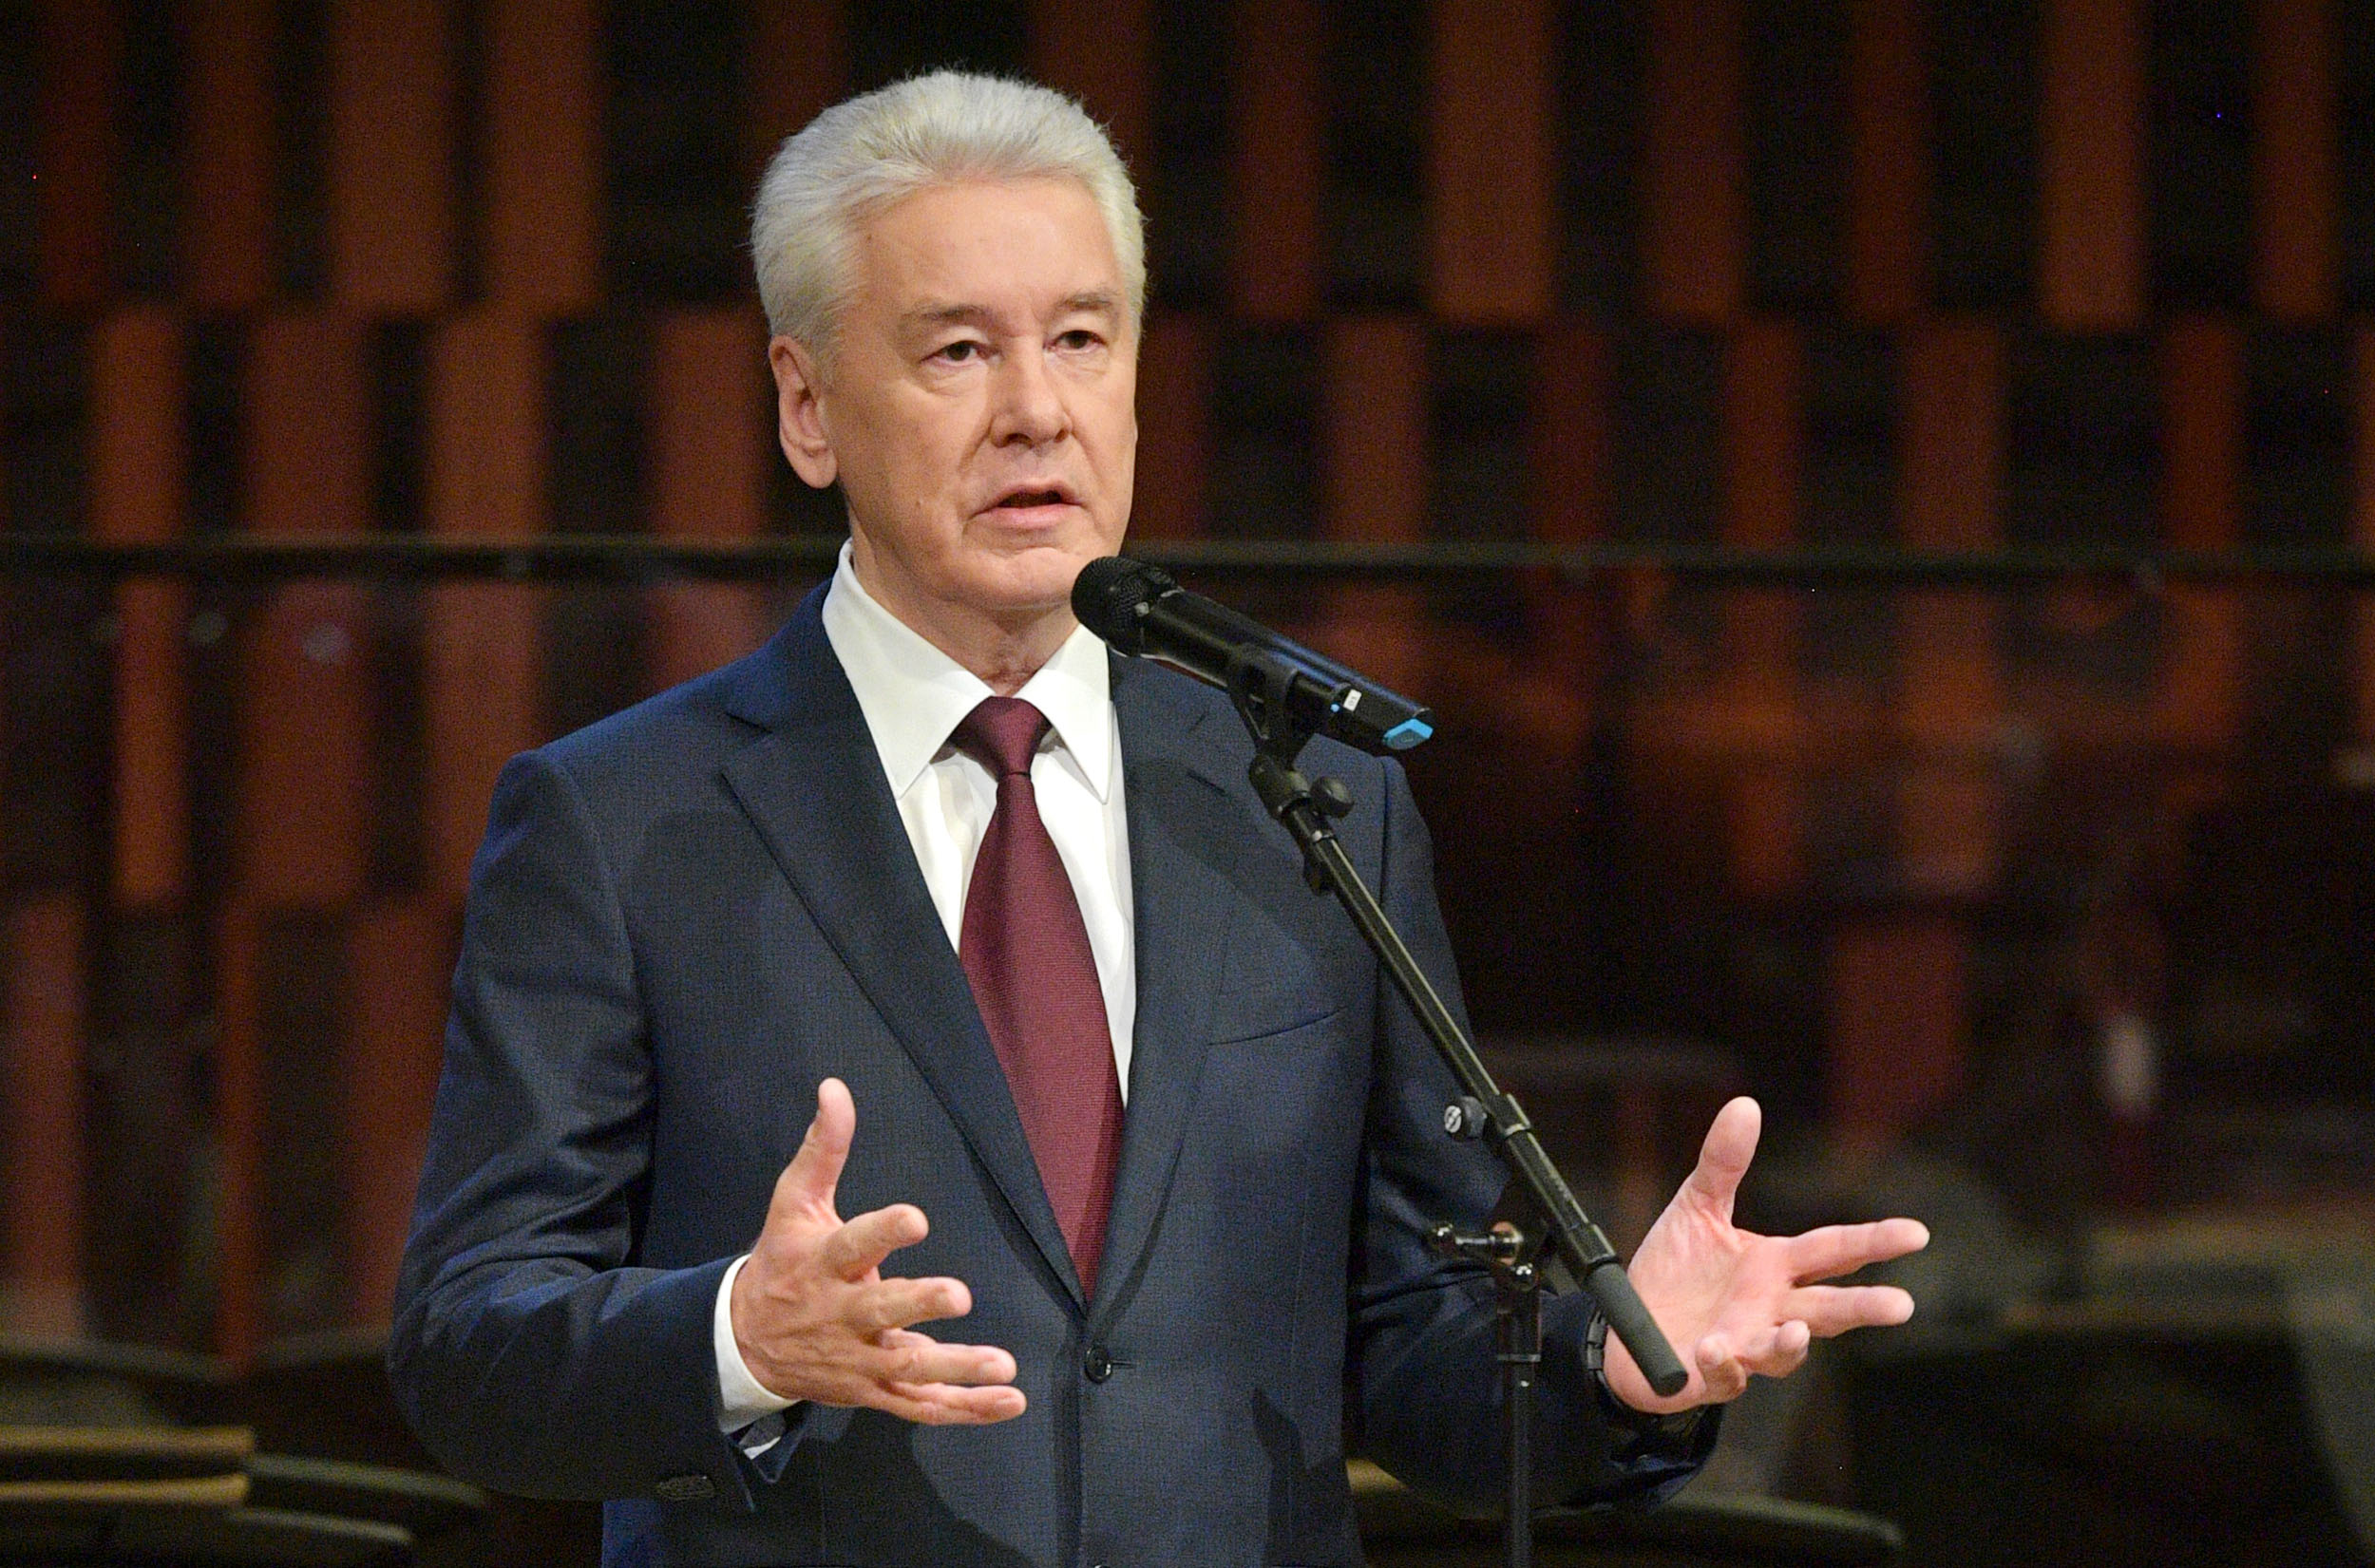 Moscow Mayor Sergey Sobyanin gives a speech during an event marking Moscow City Day on September 5.